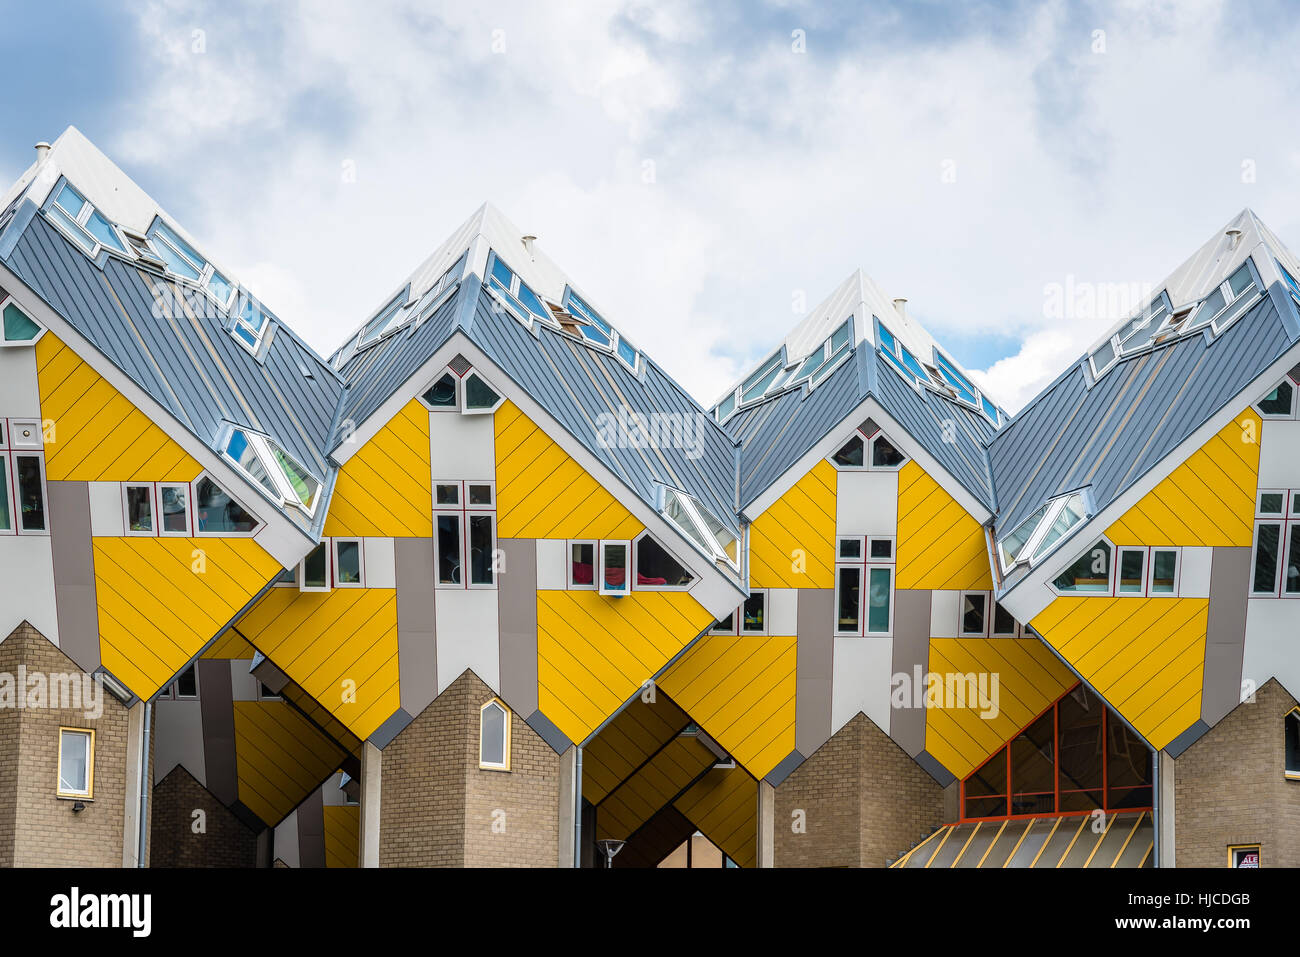 Rotterdam, Netherlands - August 6, 2016: Cube houses designed by ...